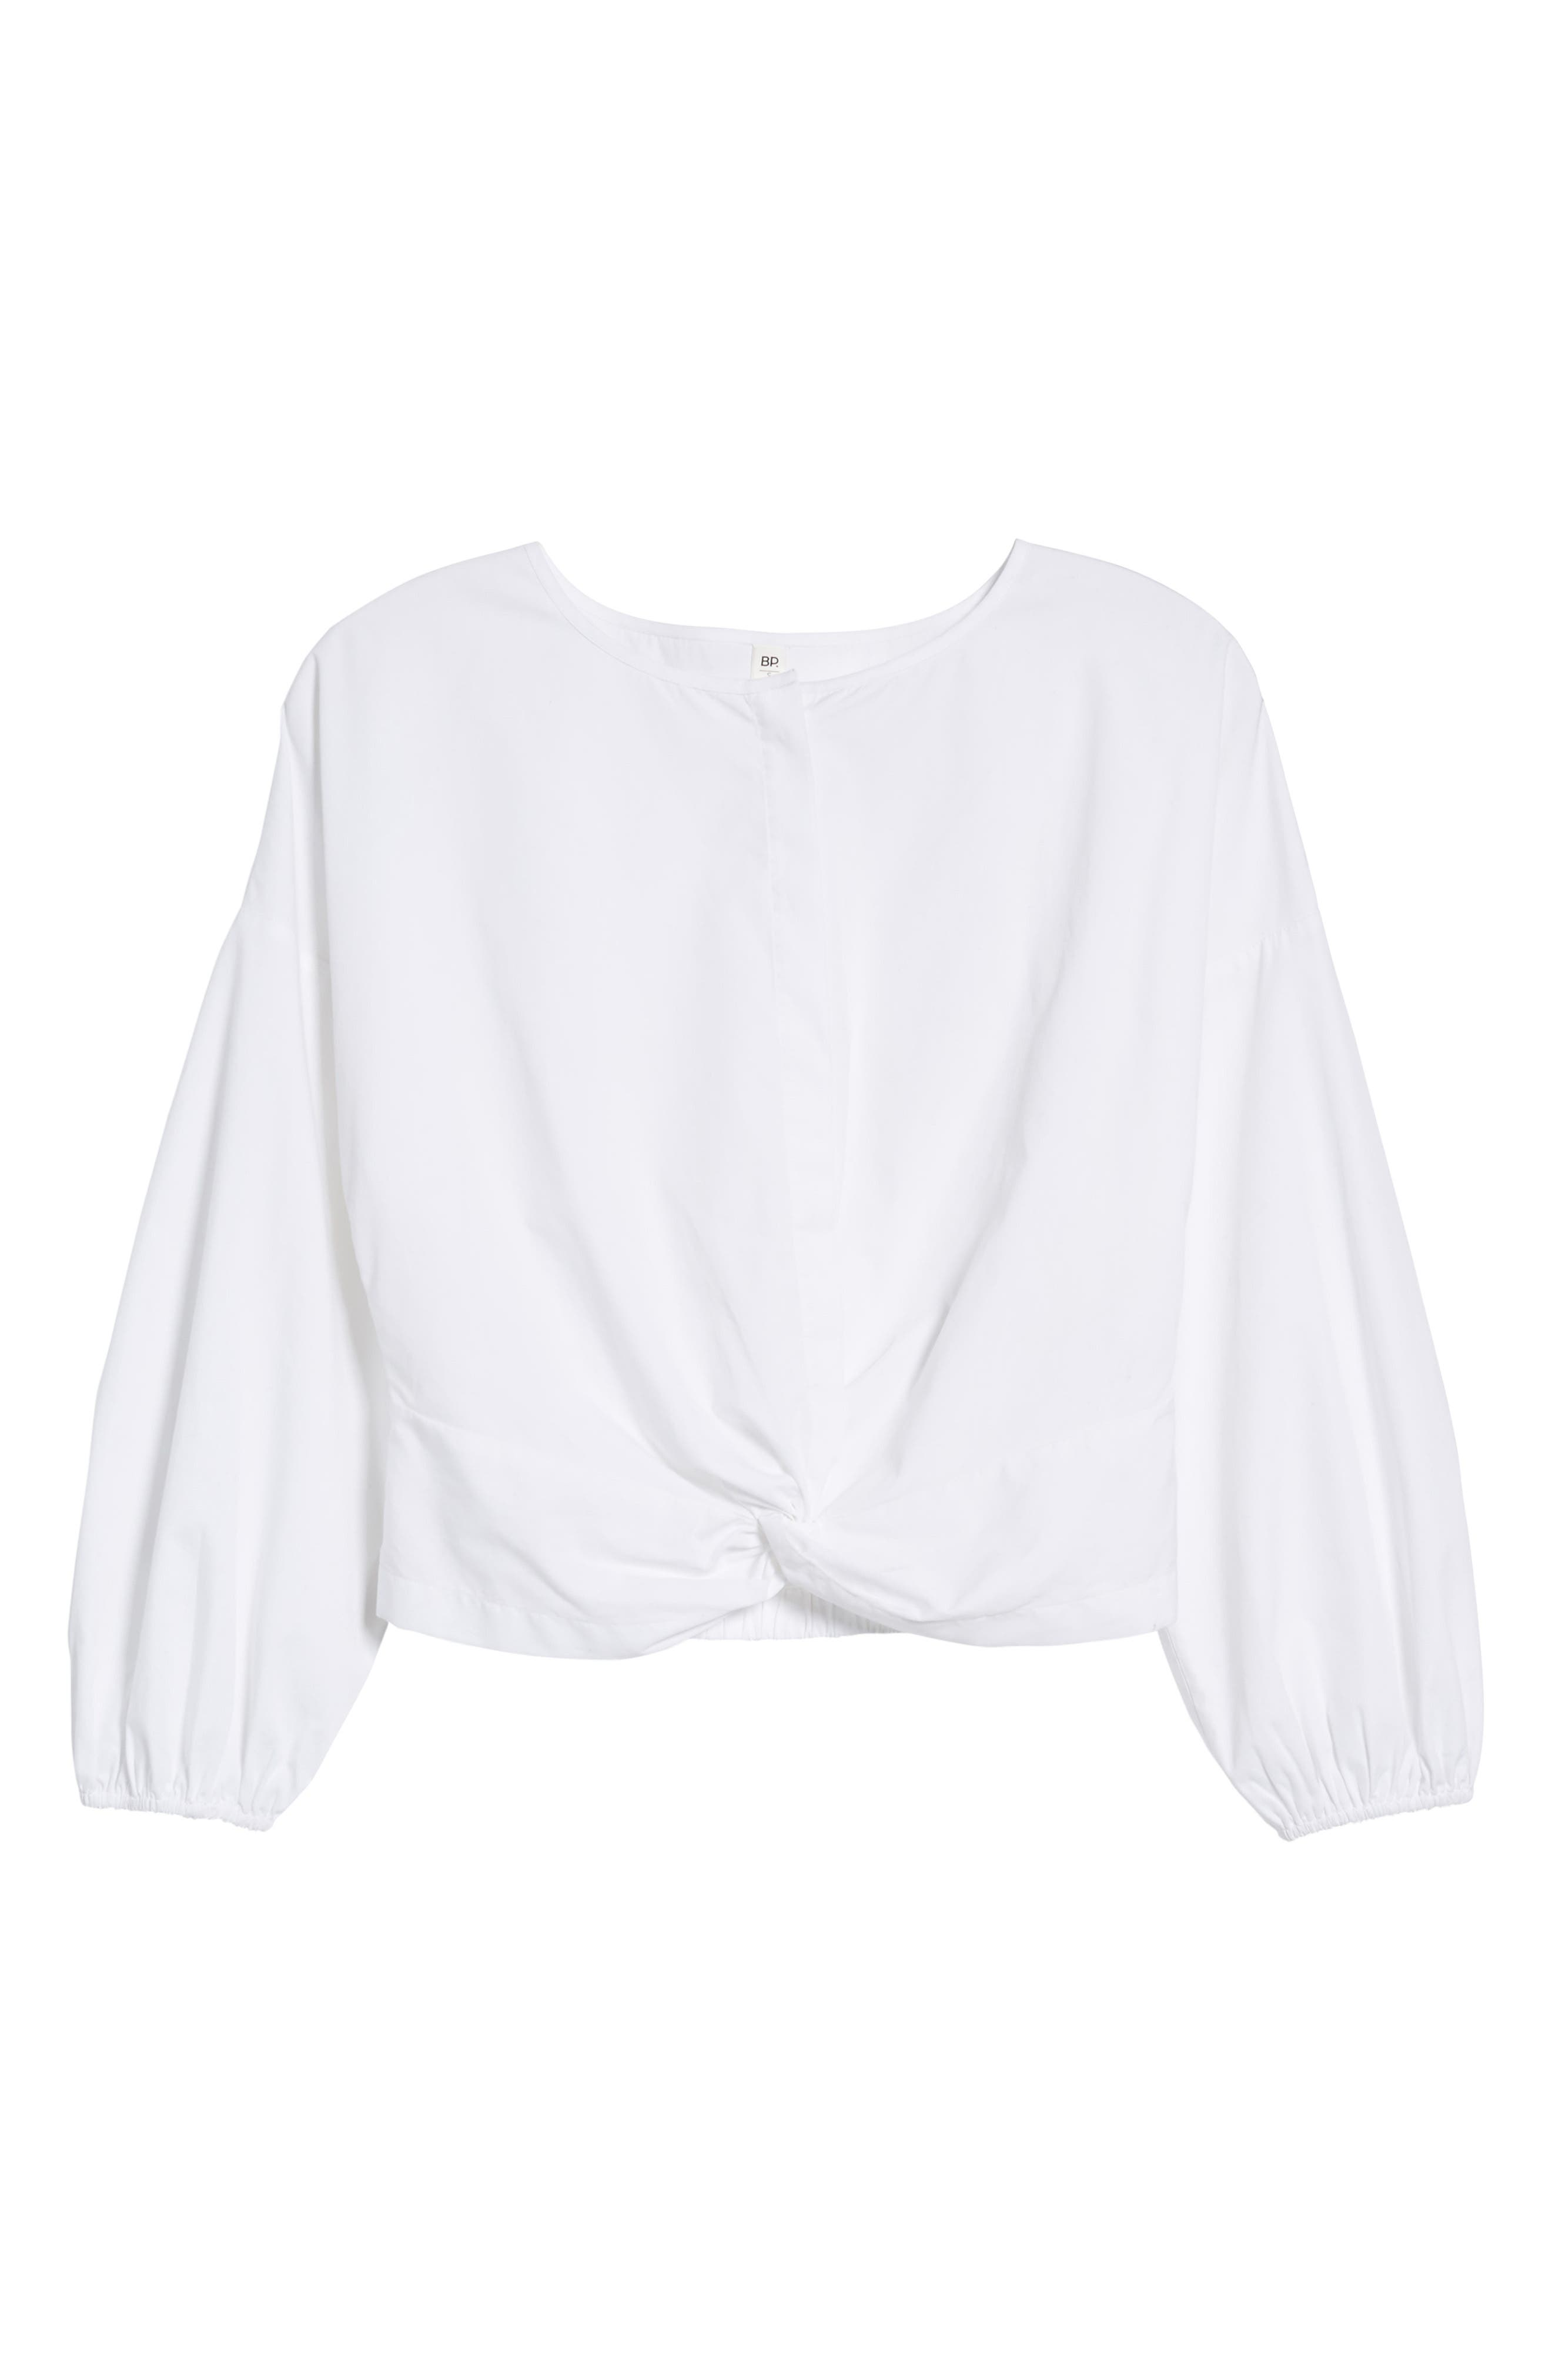 Twist Hem Crop Top,                             Alternate thumbnail 6, color,                             100